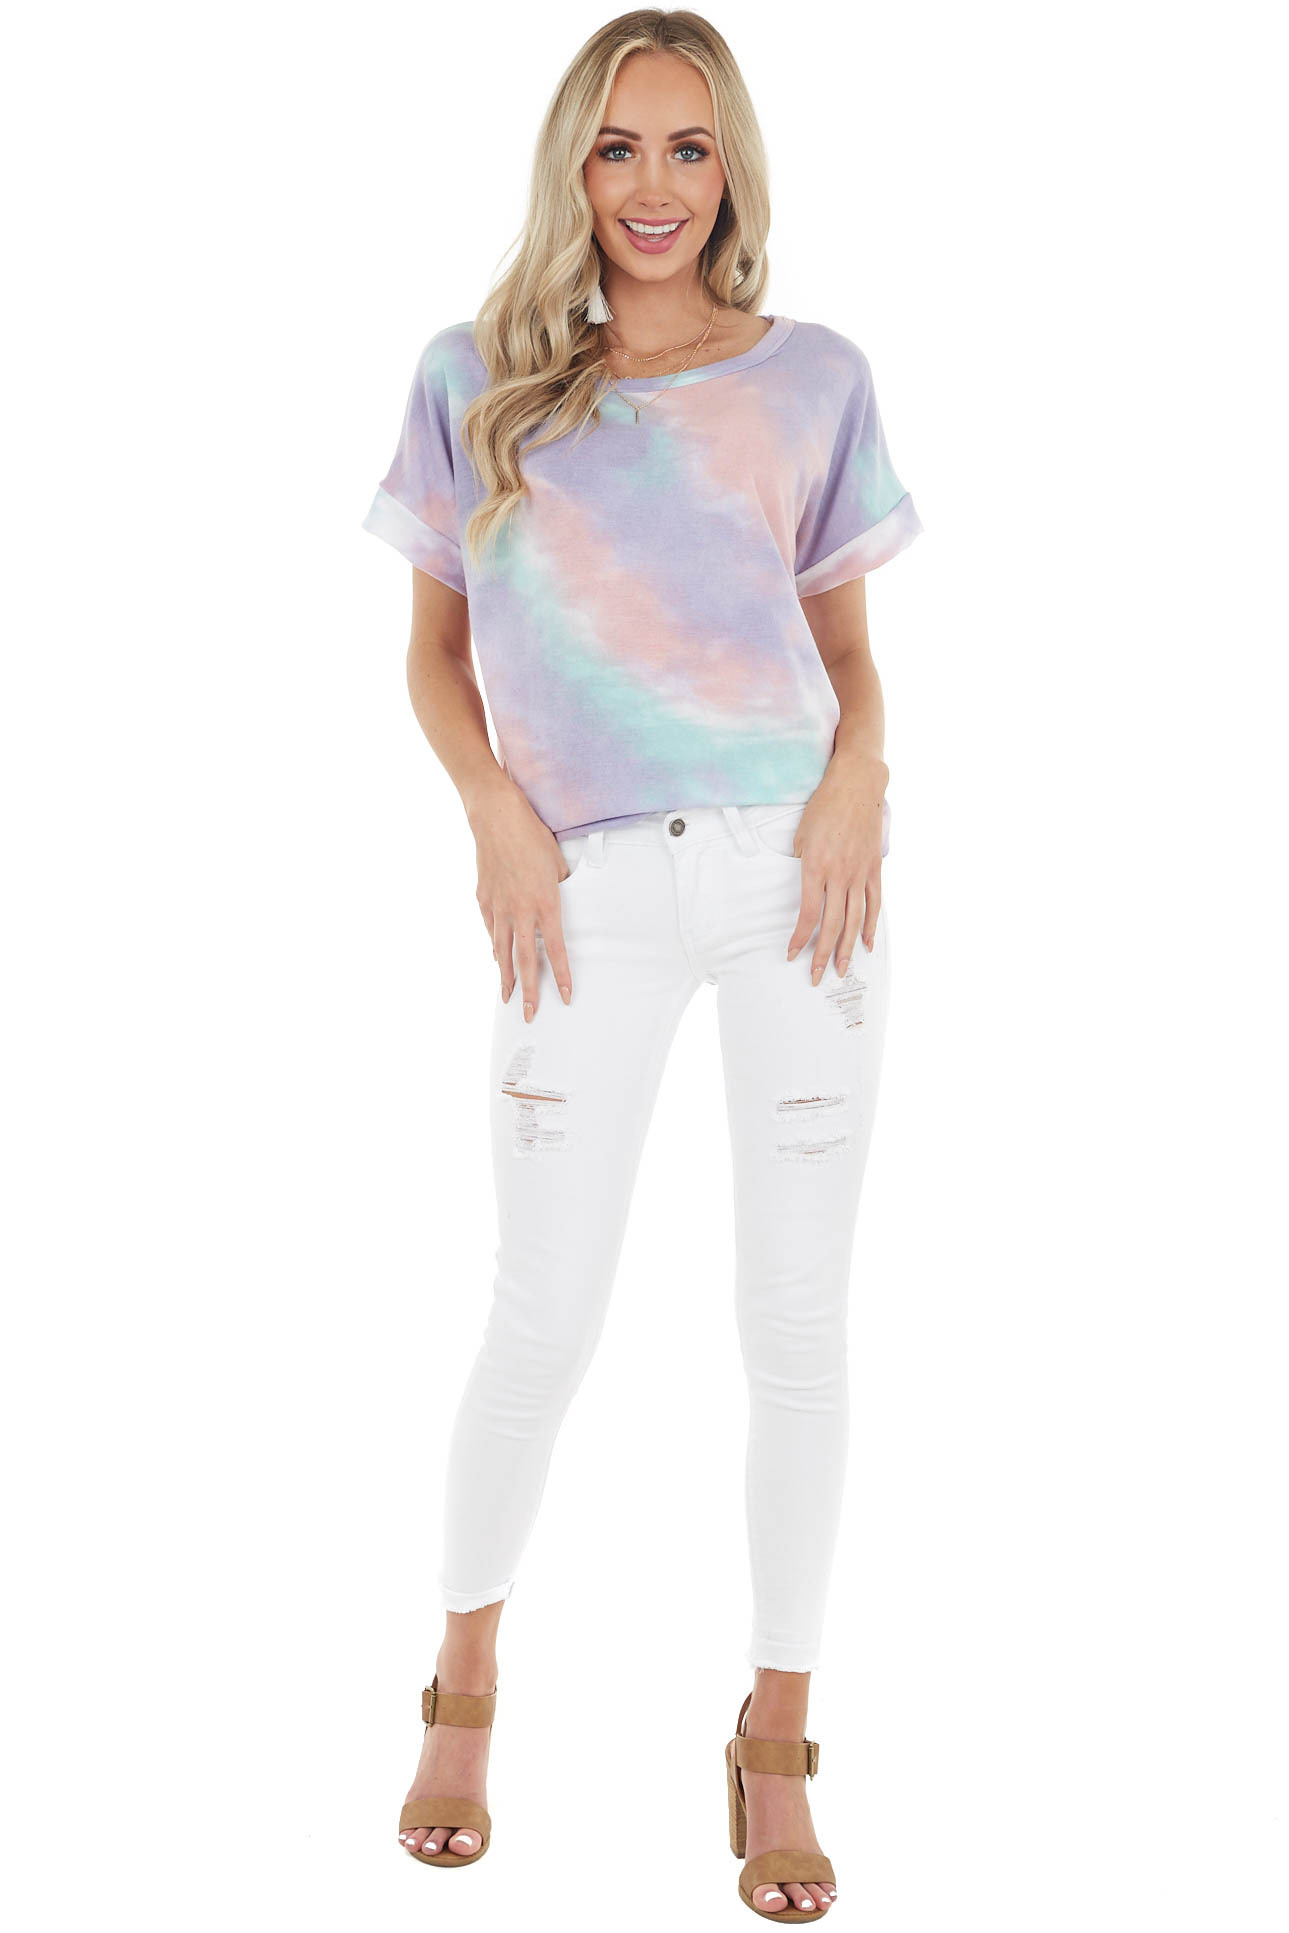 Lavender and Mint Tie Dye Short Sleeve Stretchy Knit Top